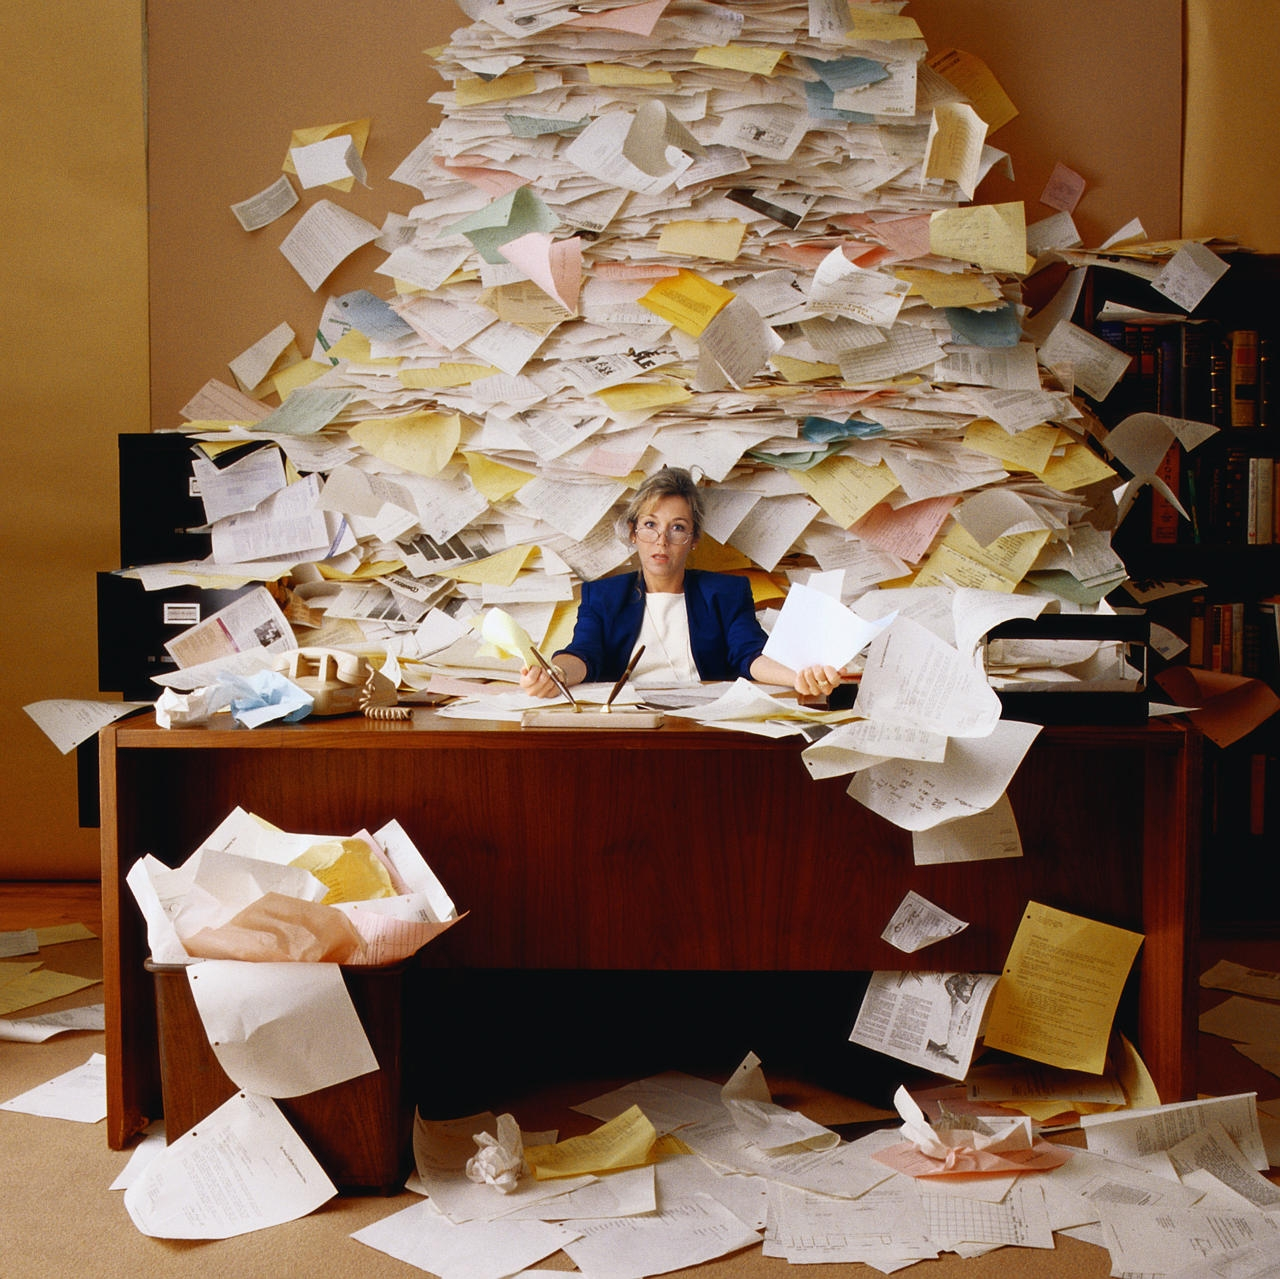 Ah, the paperless office!